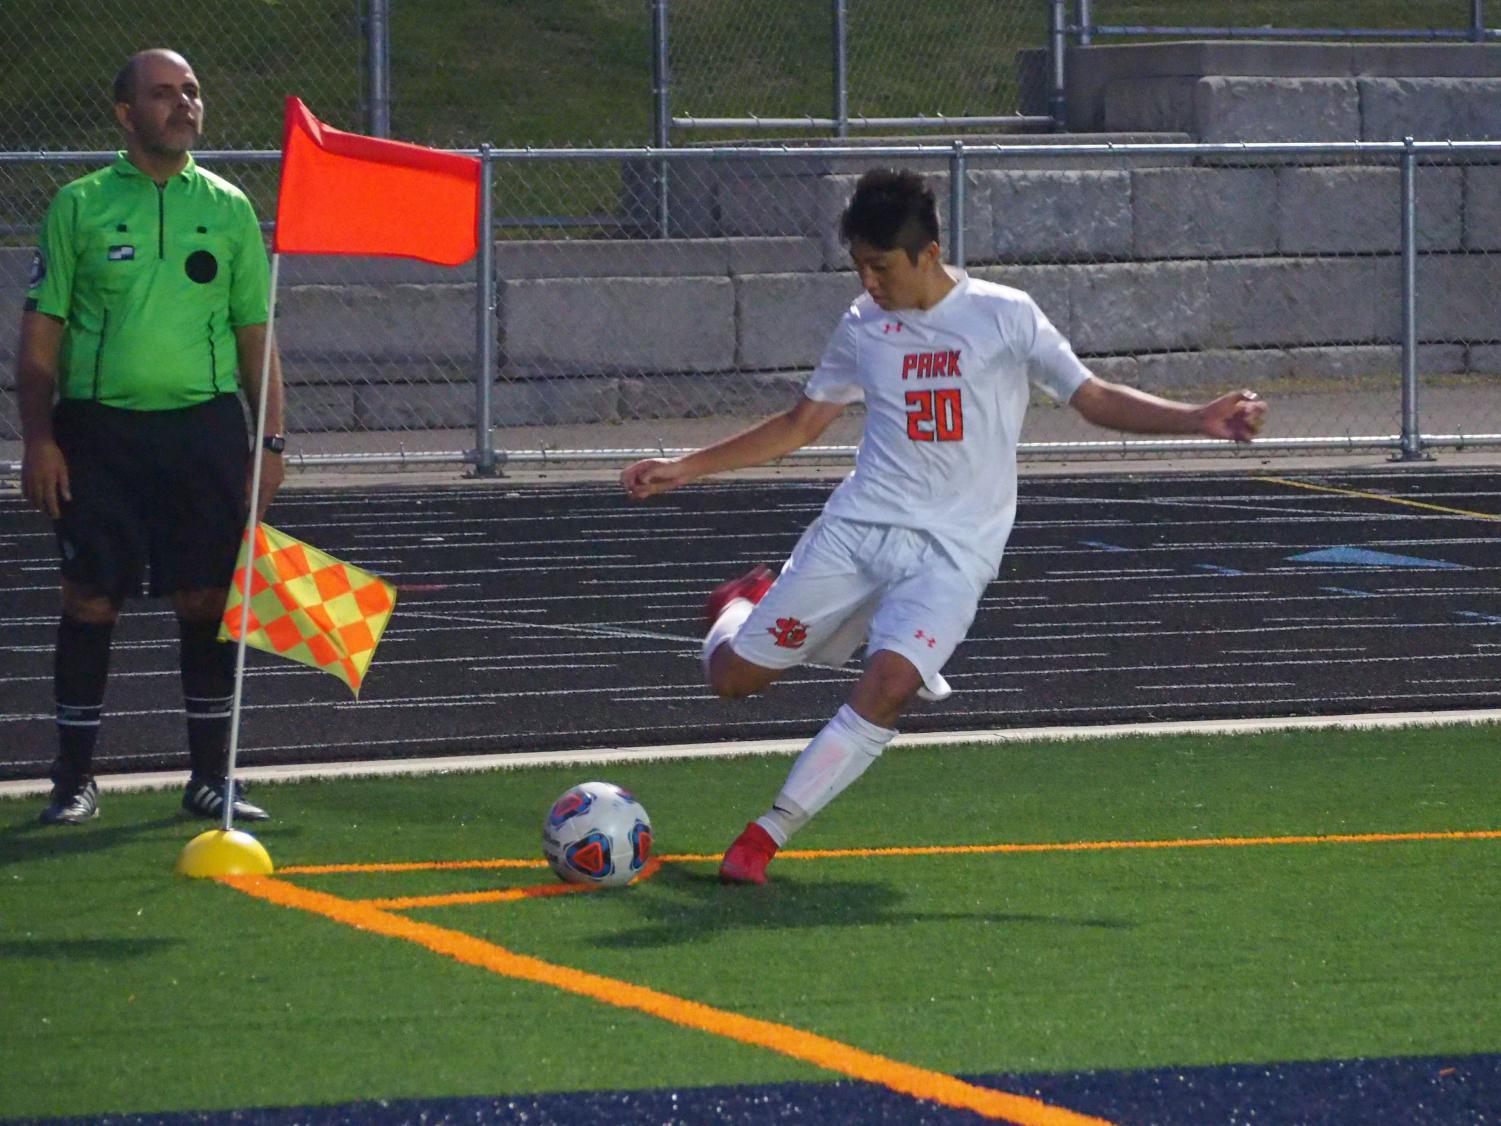 Sophomore Alex Ruiz-Shimada takes a corner kick towards goal against Robbinsdale Cooper, Sept. 13. The boys' soccer team is fifth in the state class 2A rank.